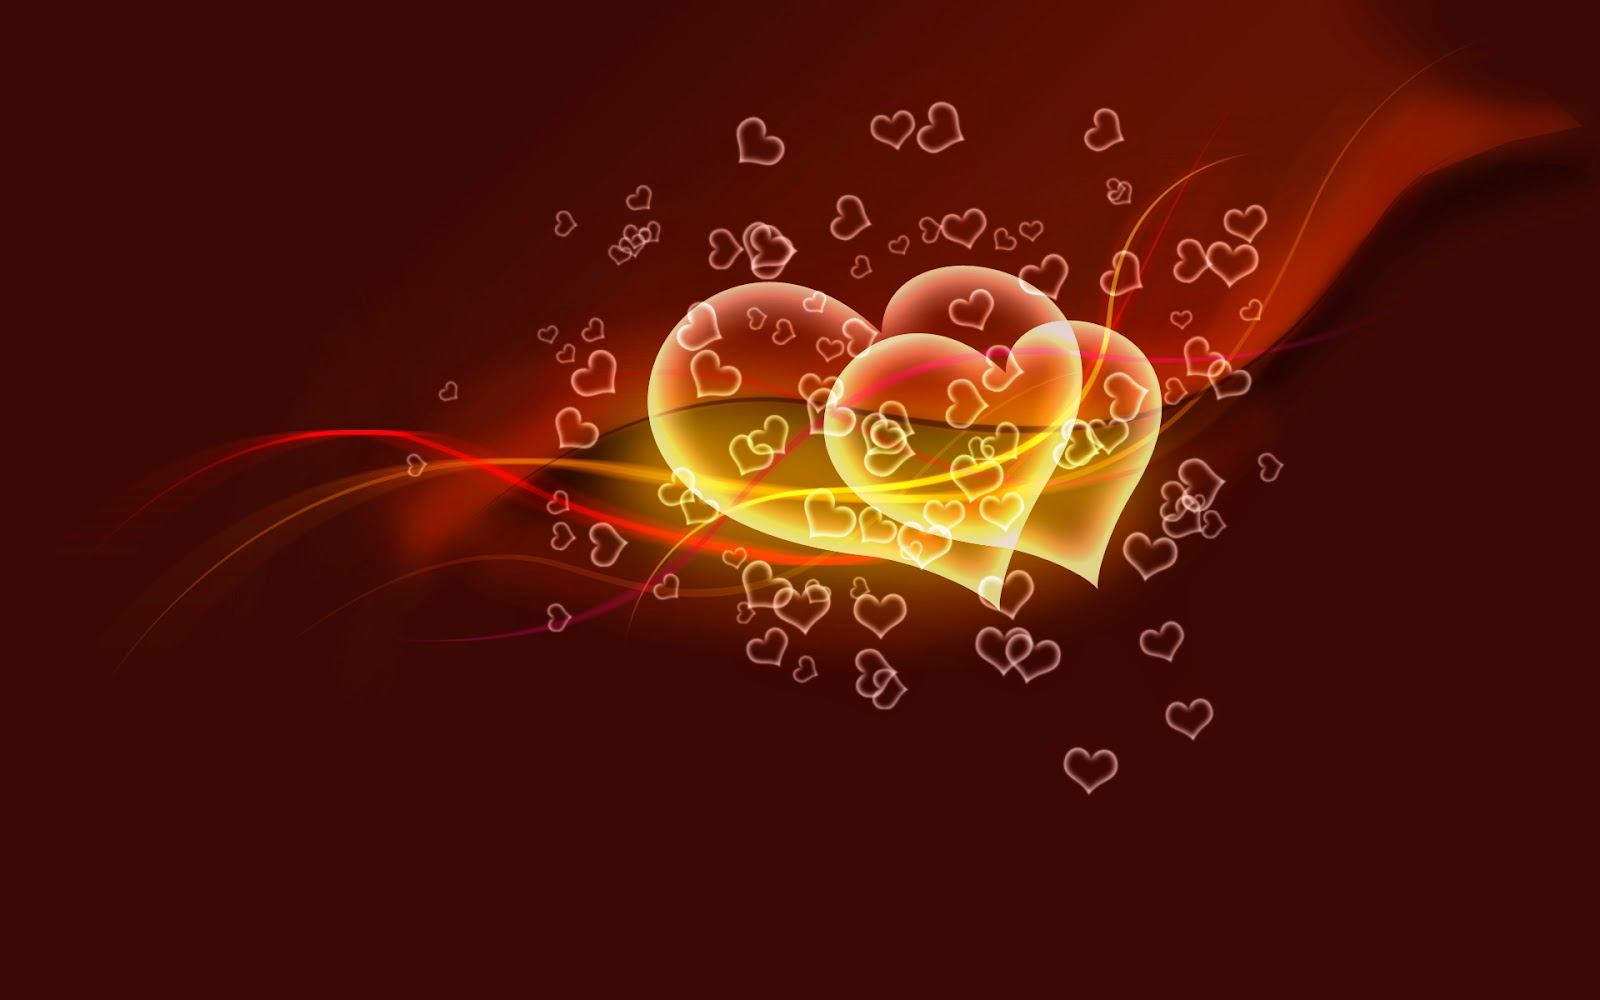 Valentine Day 2015 HD Wallpapers